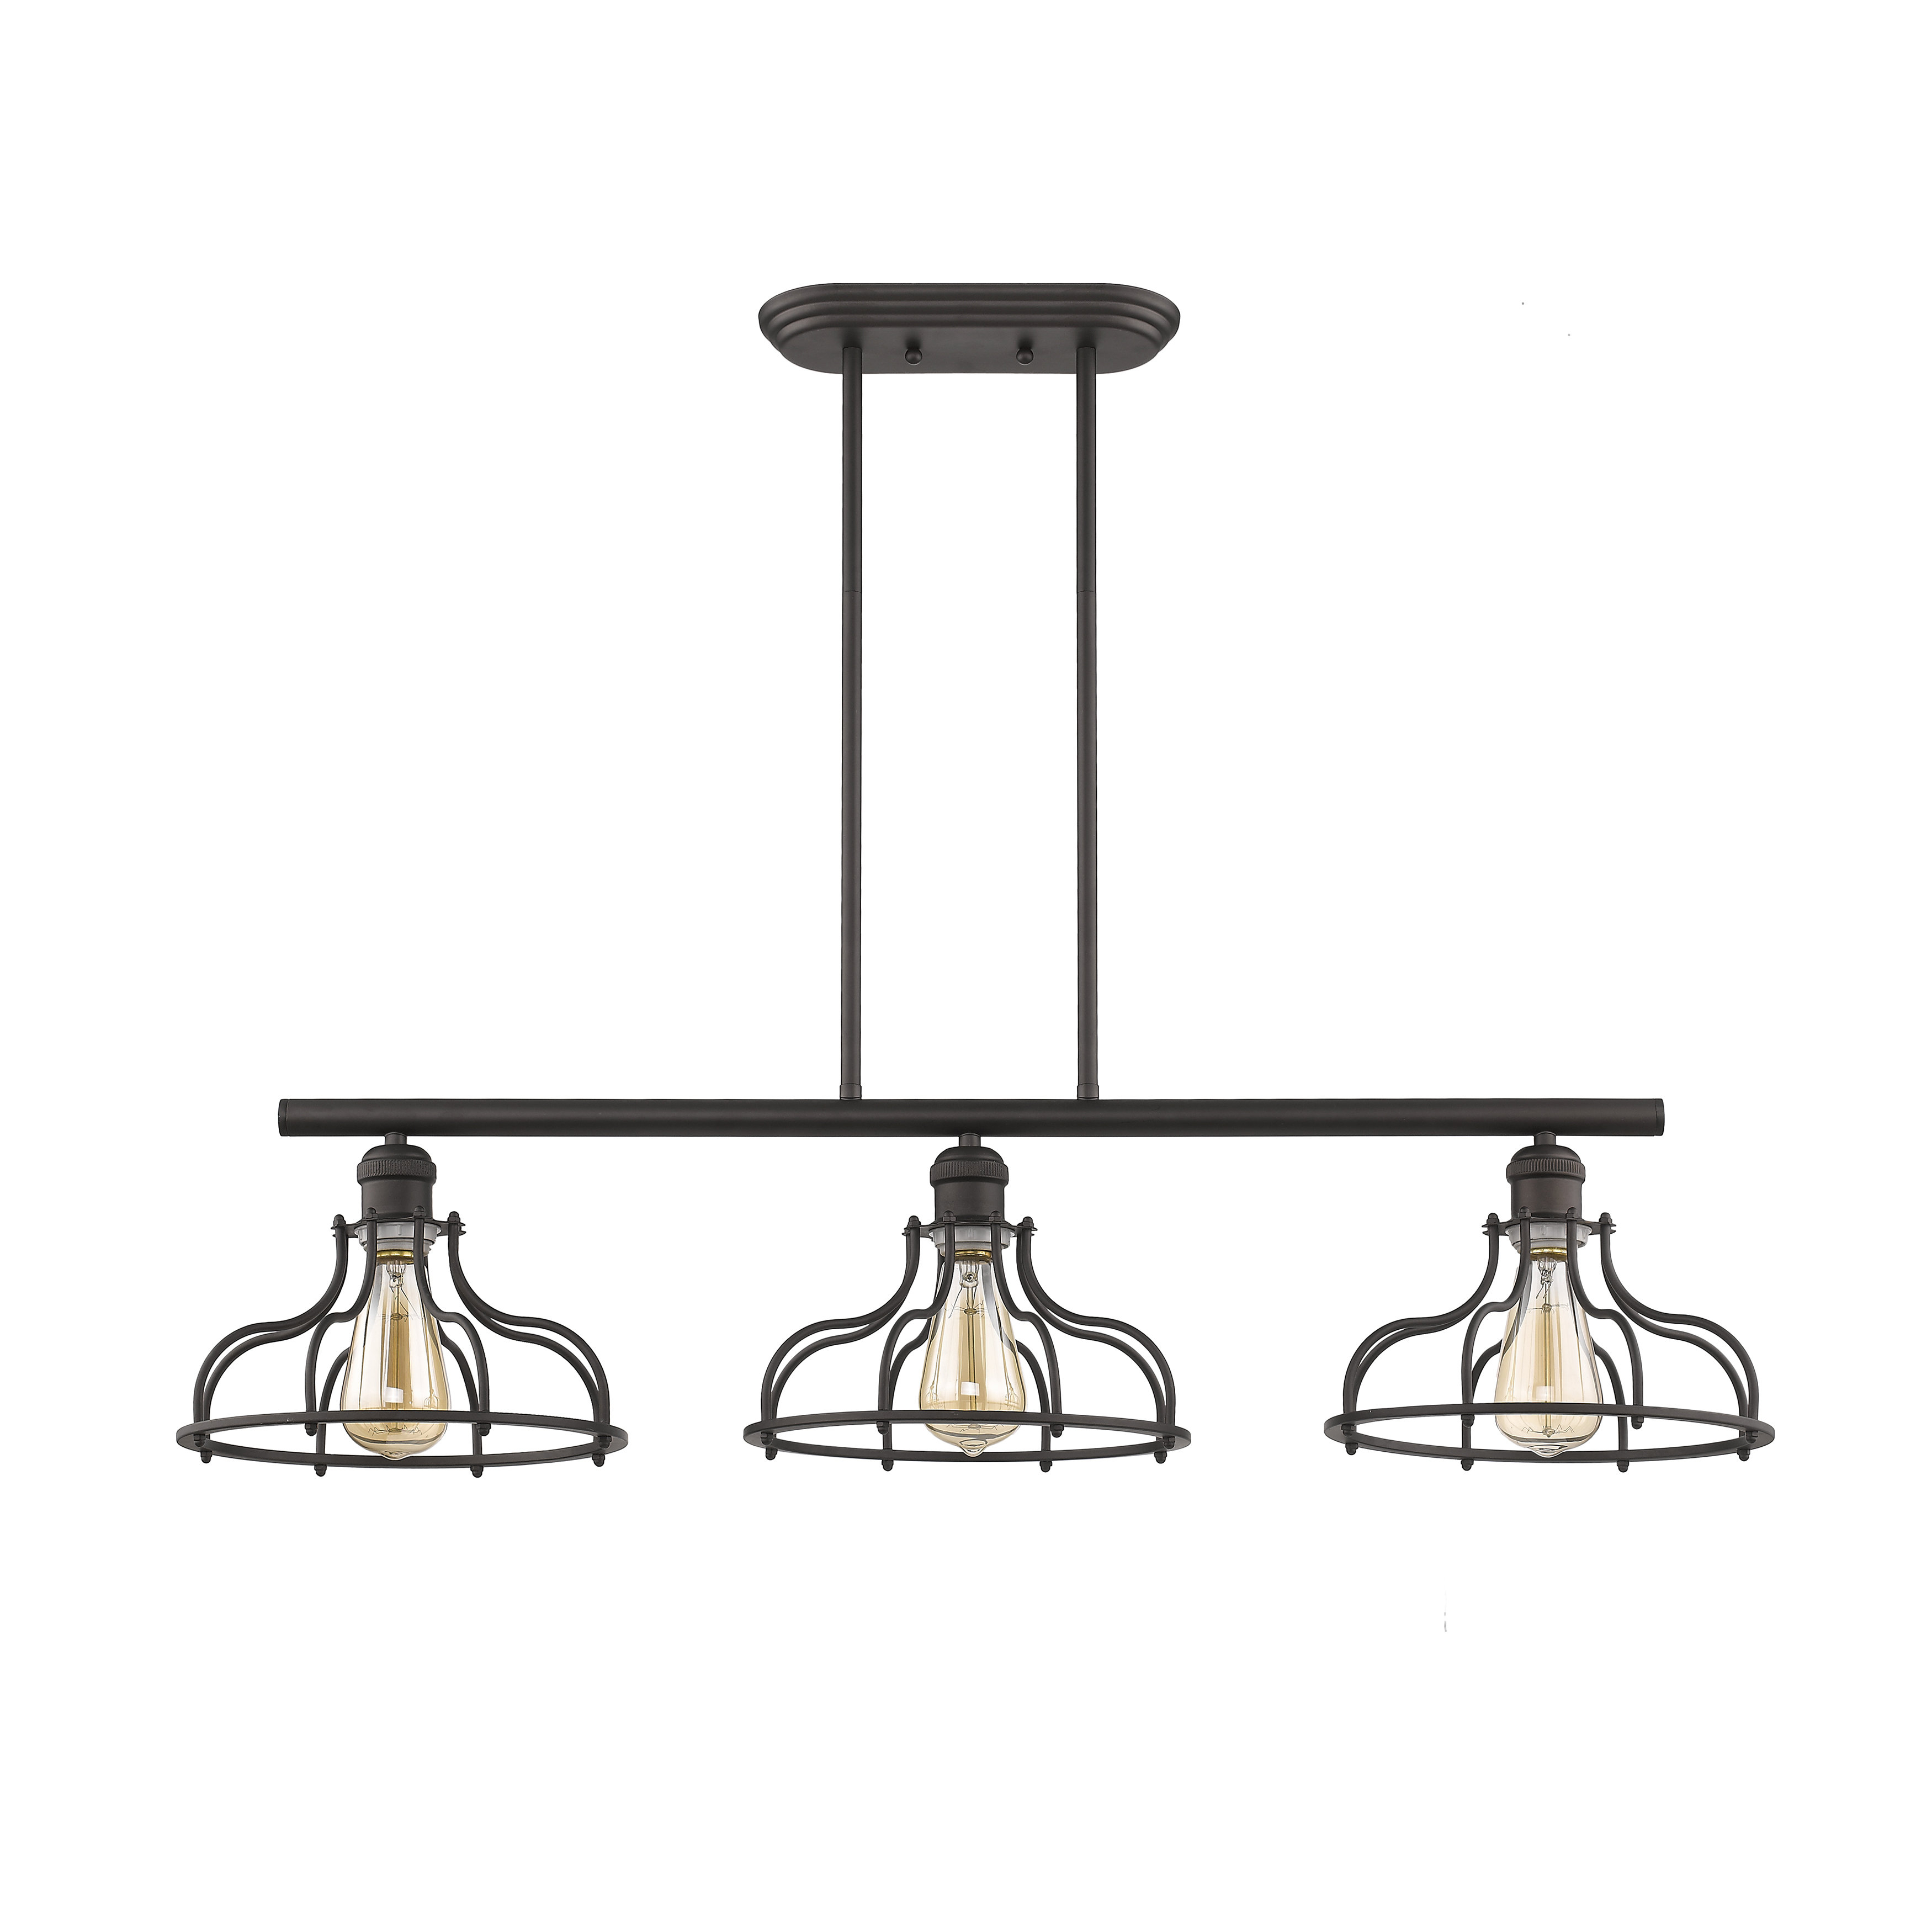 Industrial Farmhouse Lighting | Wayfair With Regard To Akash Industrial Vintage 1 Light Geometric Pendants (View 12 of 30)